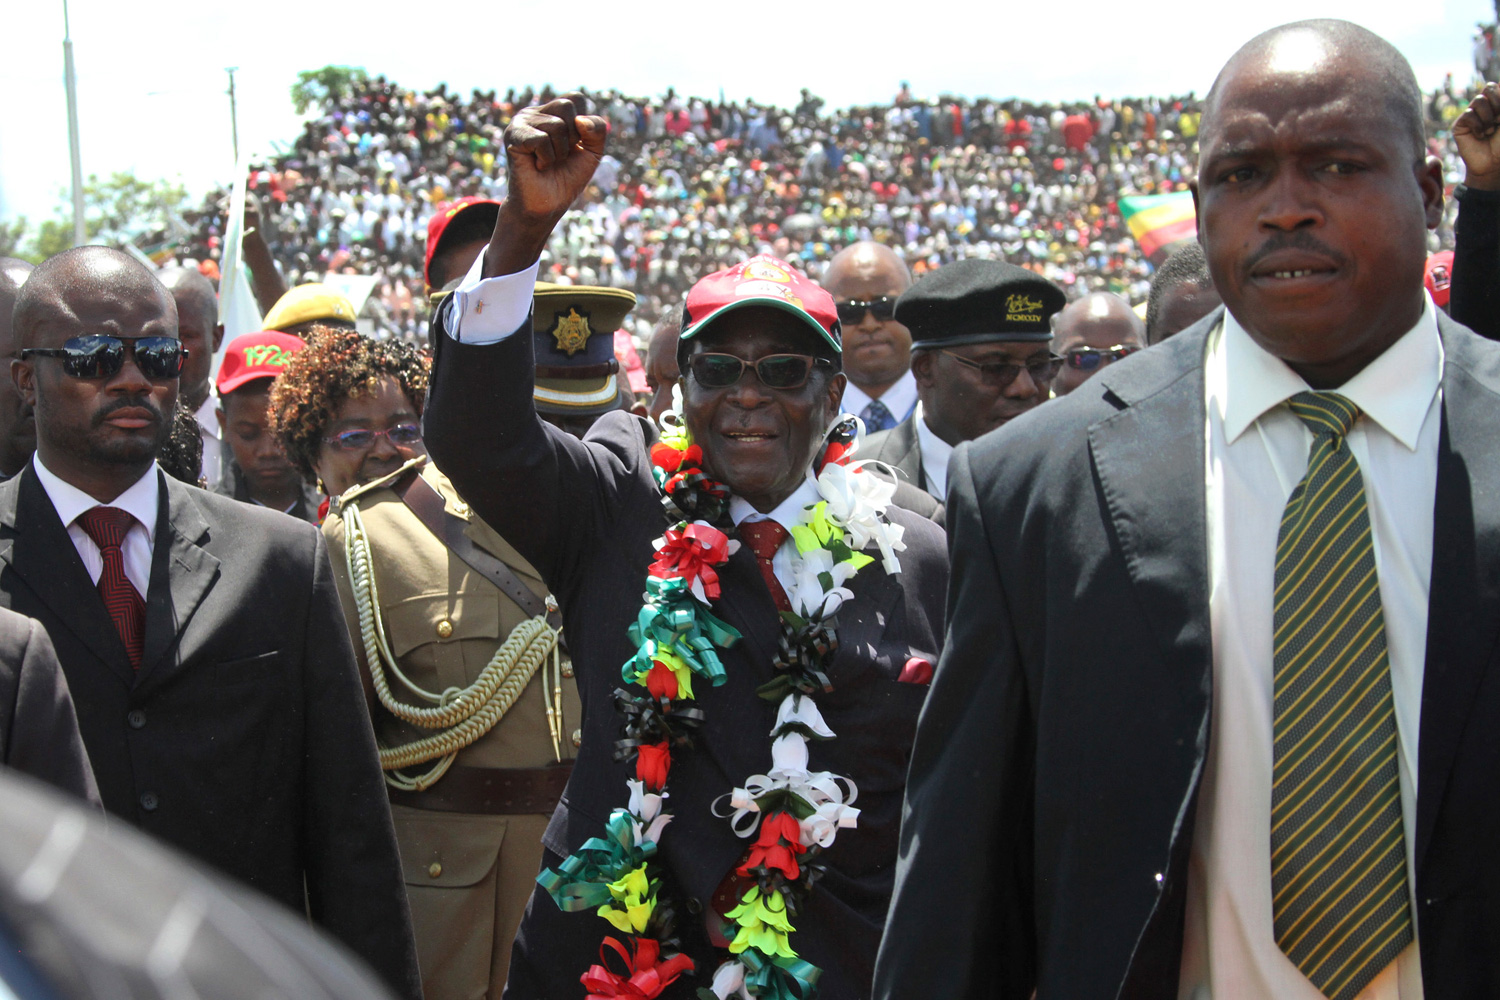 Feb. 25, 2012. Zimbabwean President Robert Mugabe, center, greets the crowd as he arrives for his 88th birthday celebrations in Mutare, Zimbabwe.